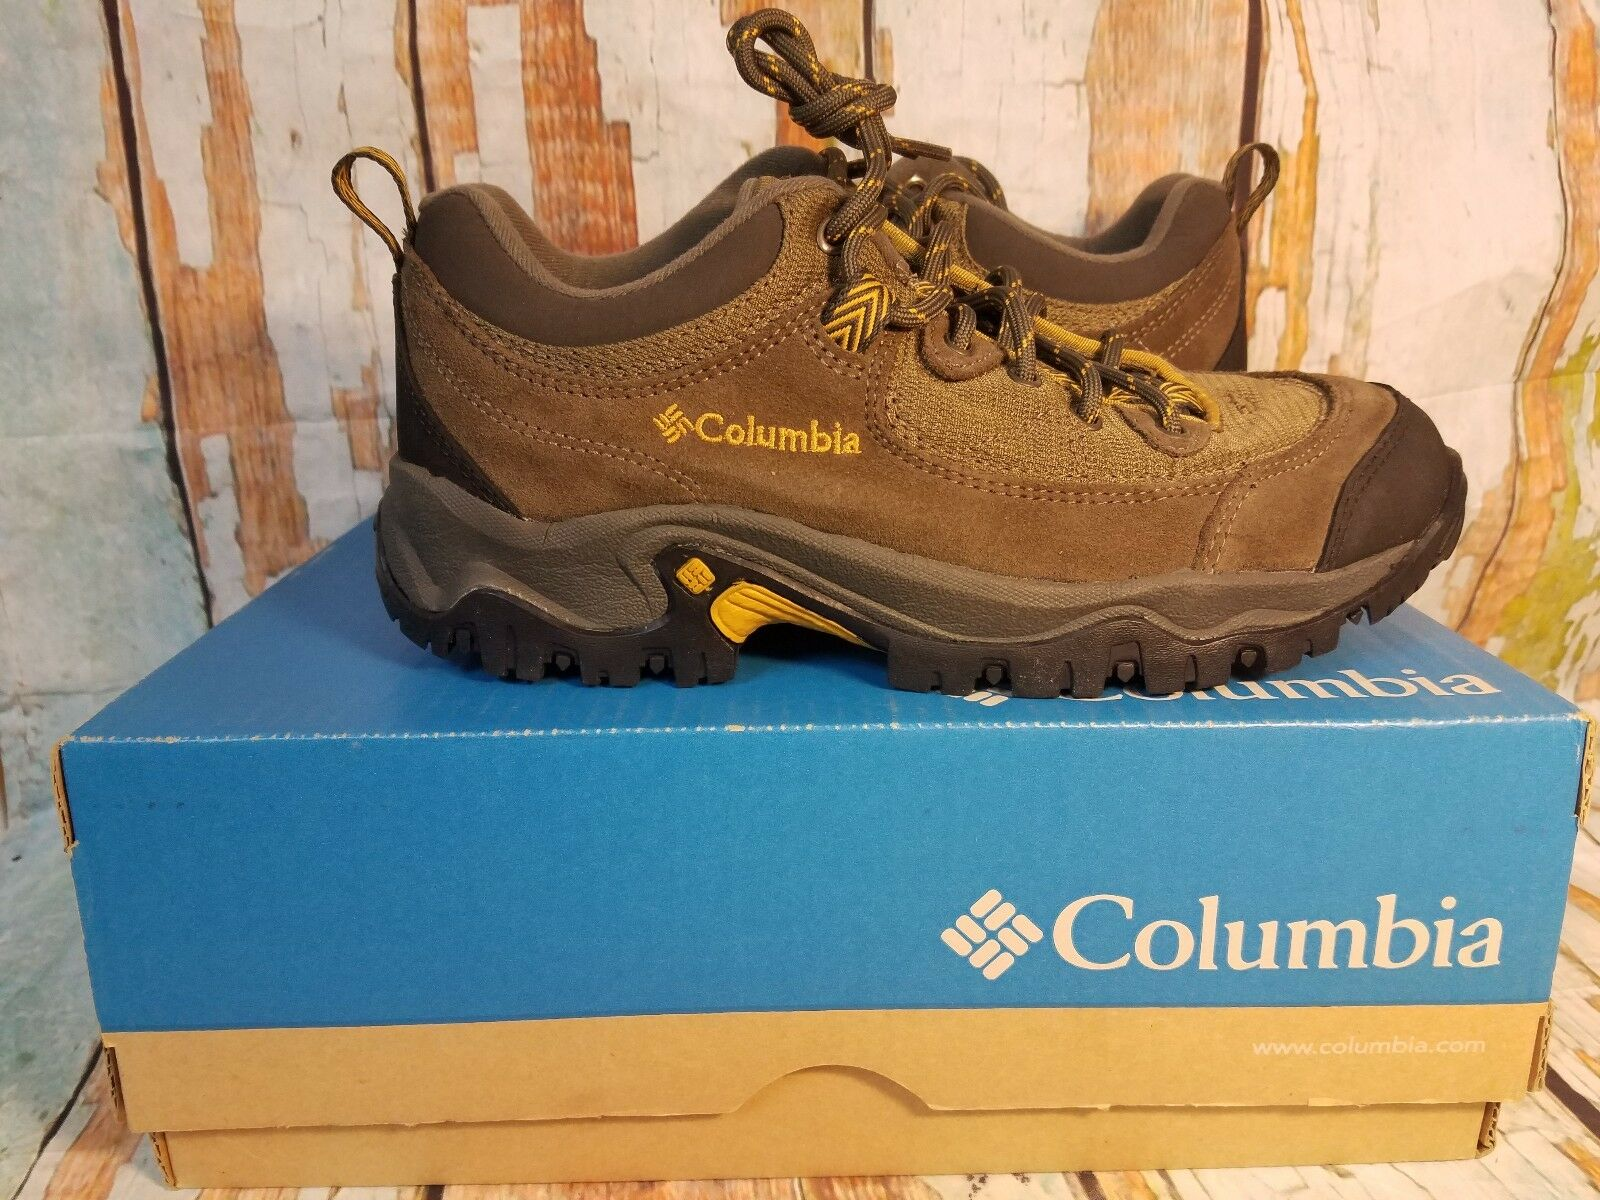 Columbia Birke Trail shoes-Men's size 8 Mud New in Box